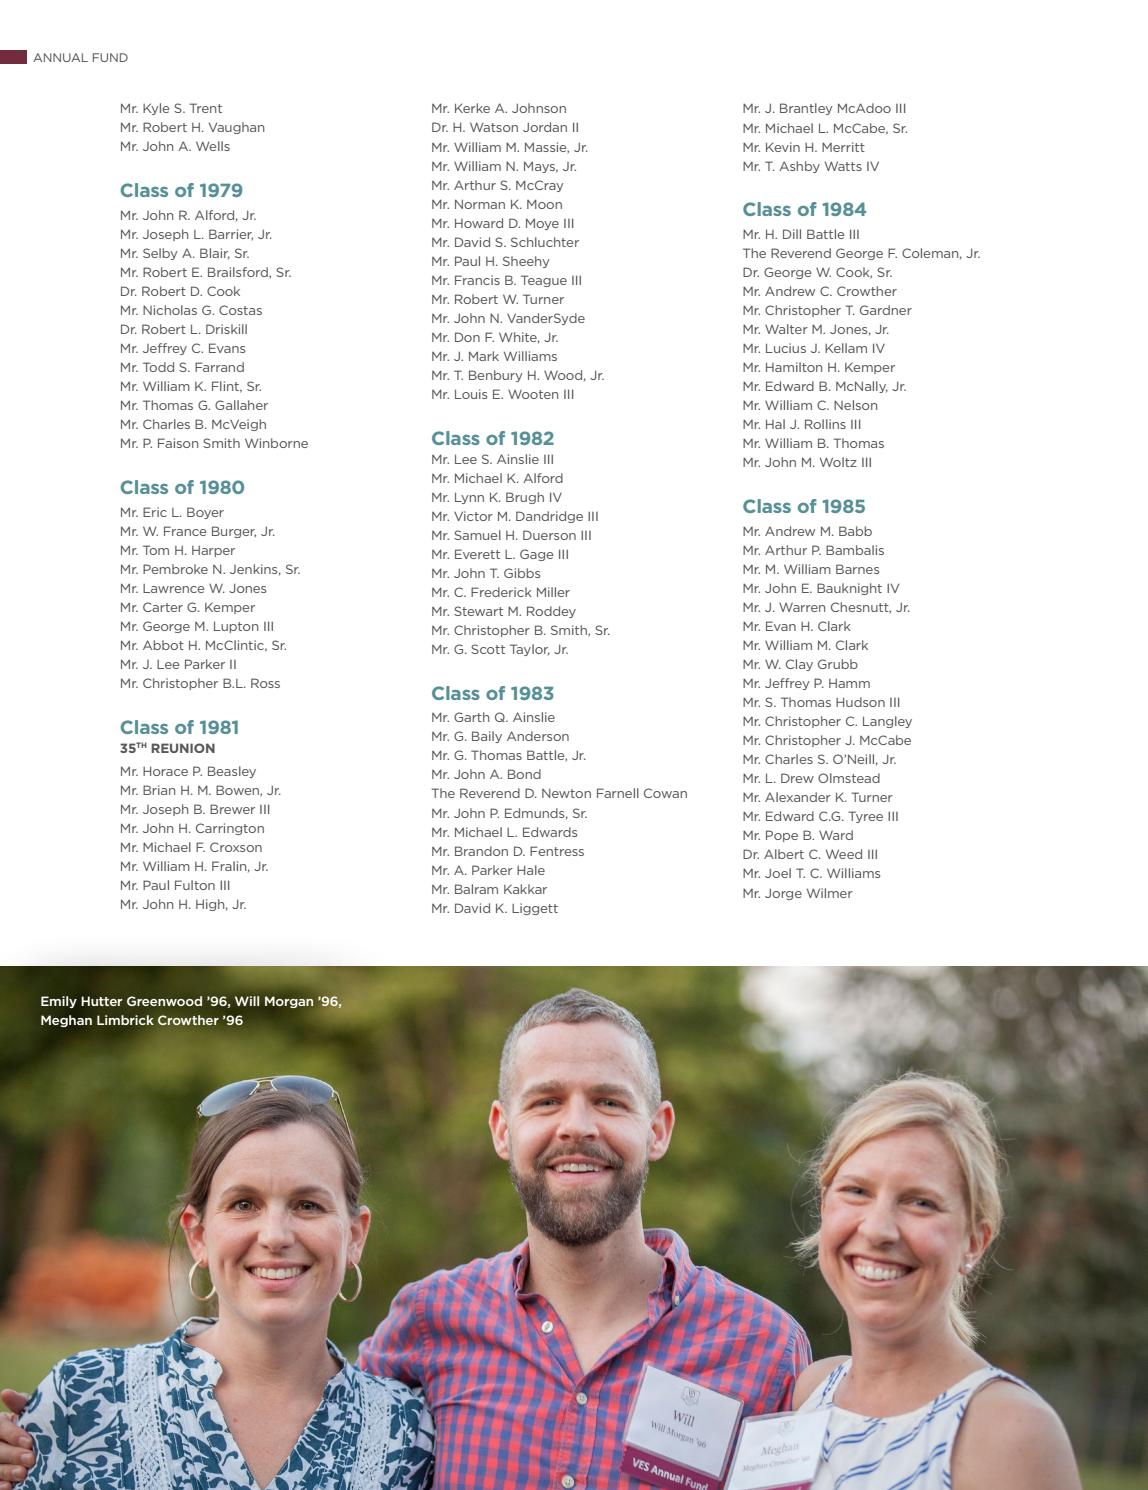 Virginia Episcopal School - 2015-16 Annual Report on Giving